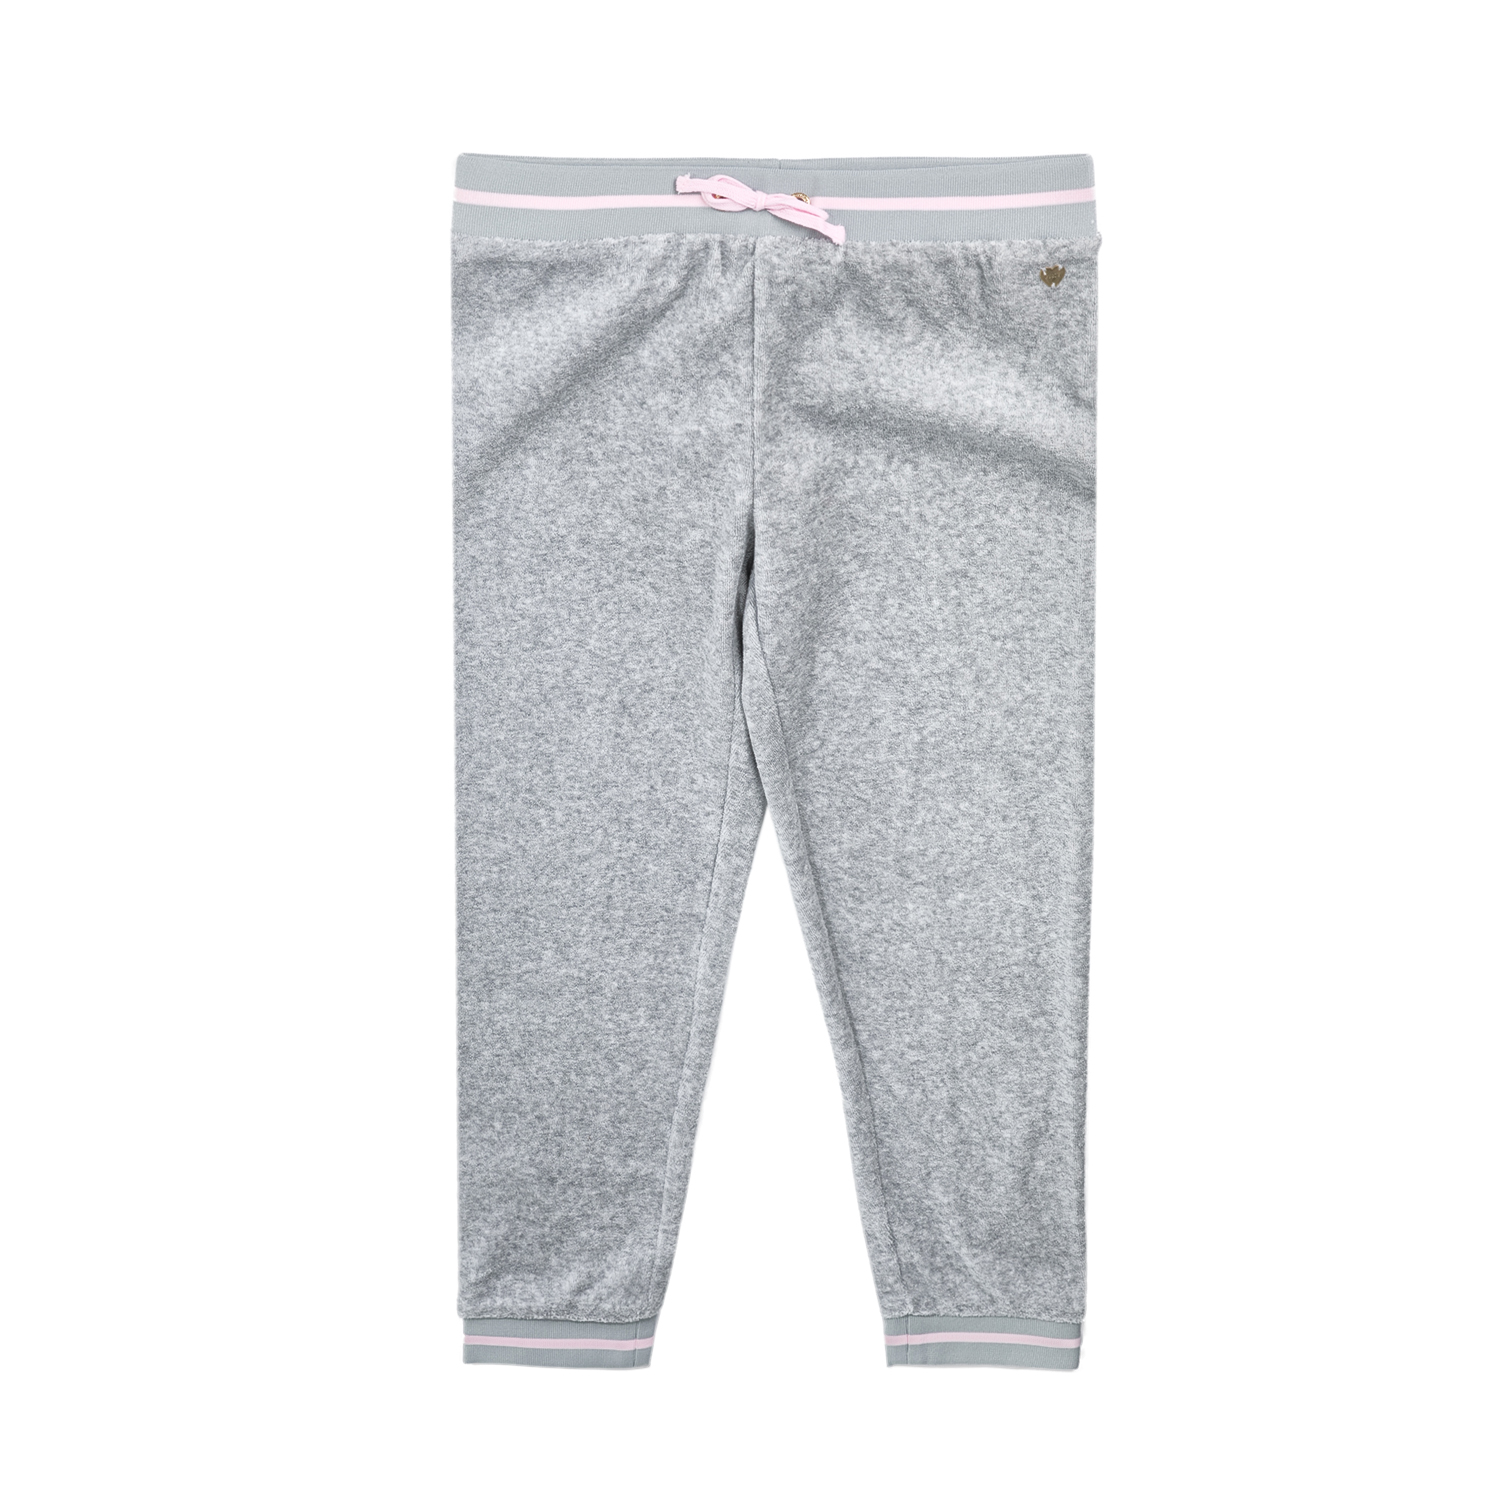 JUICY COUTURE KIDS - Κοριτσίστικο παντελόνι φόρμας JUICY COUTURE MICROTERRY LA S παιδικά girls ρούχα παντελόνια